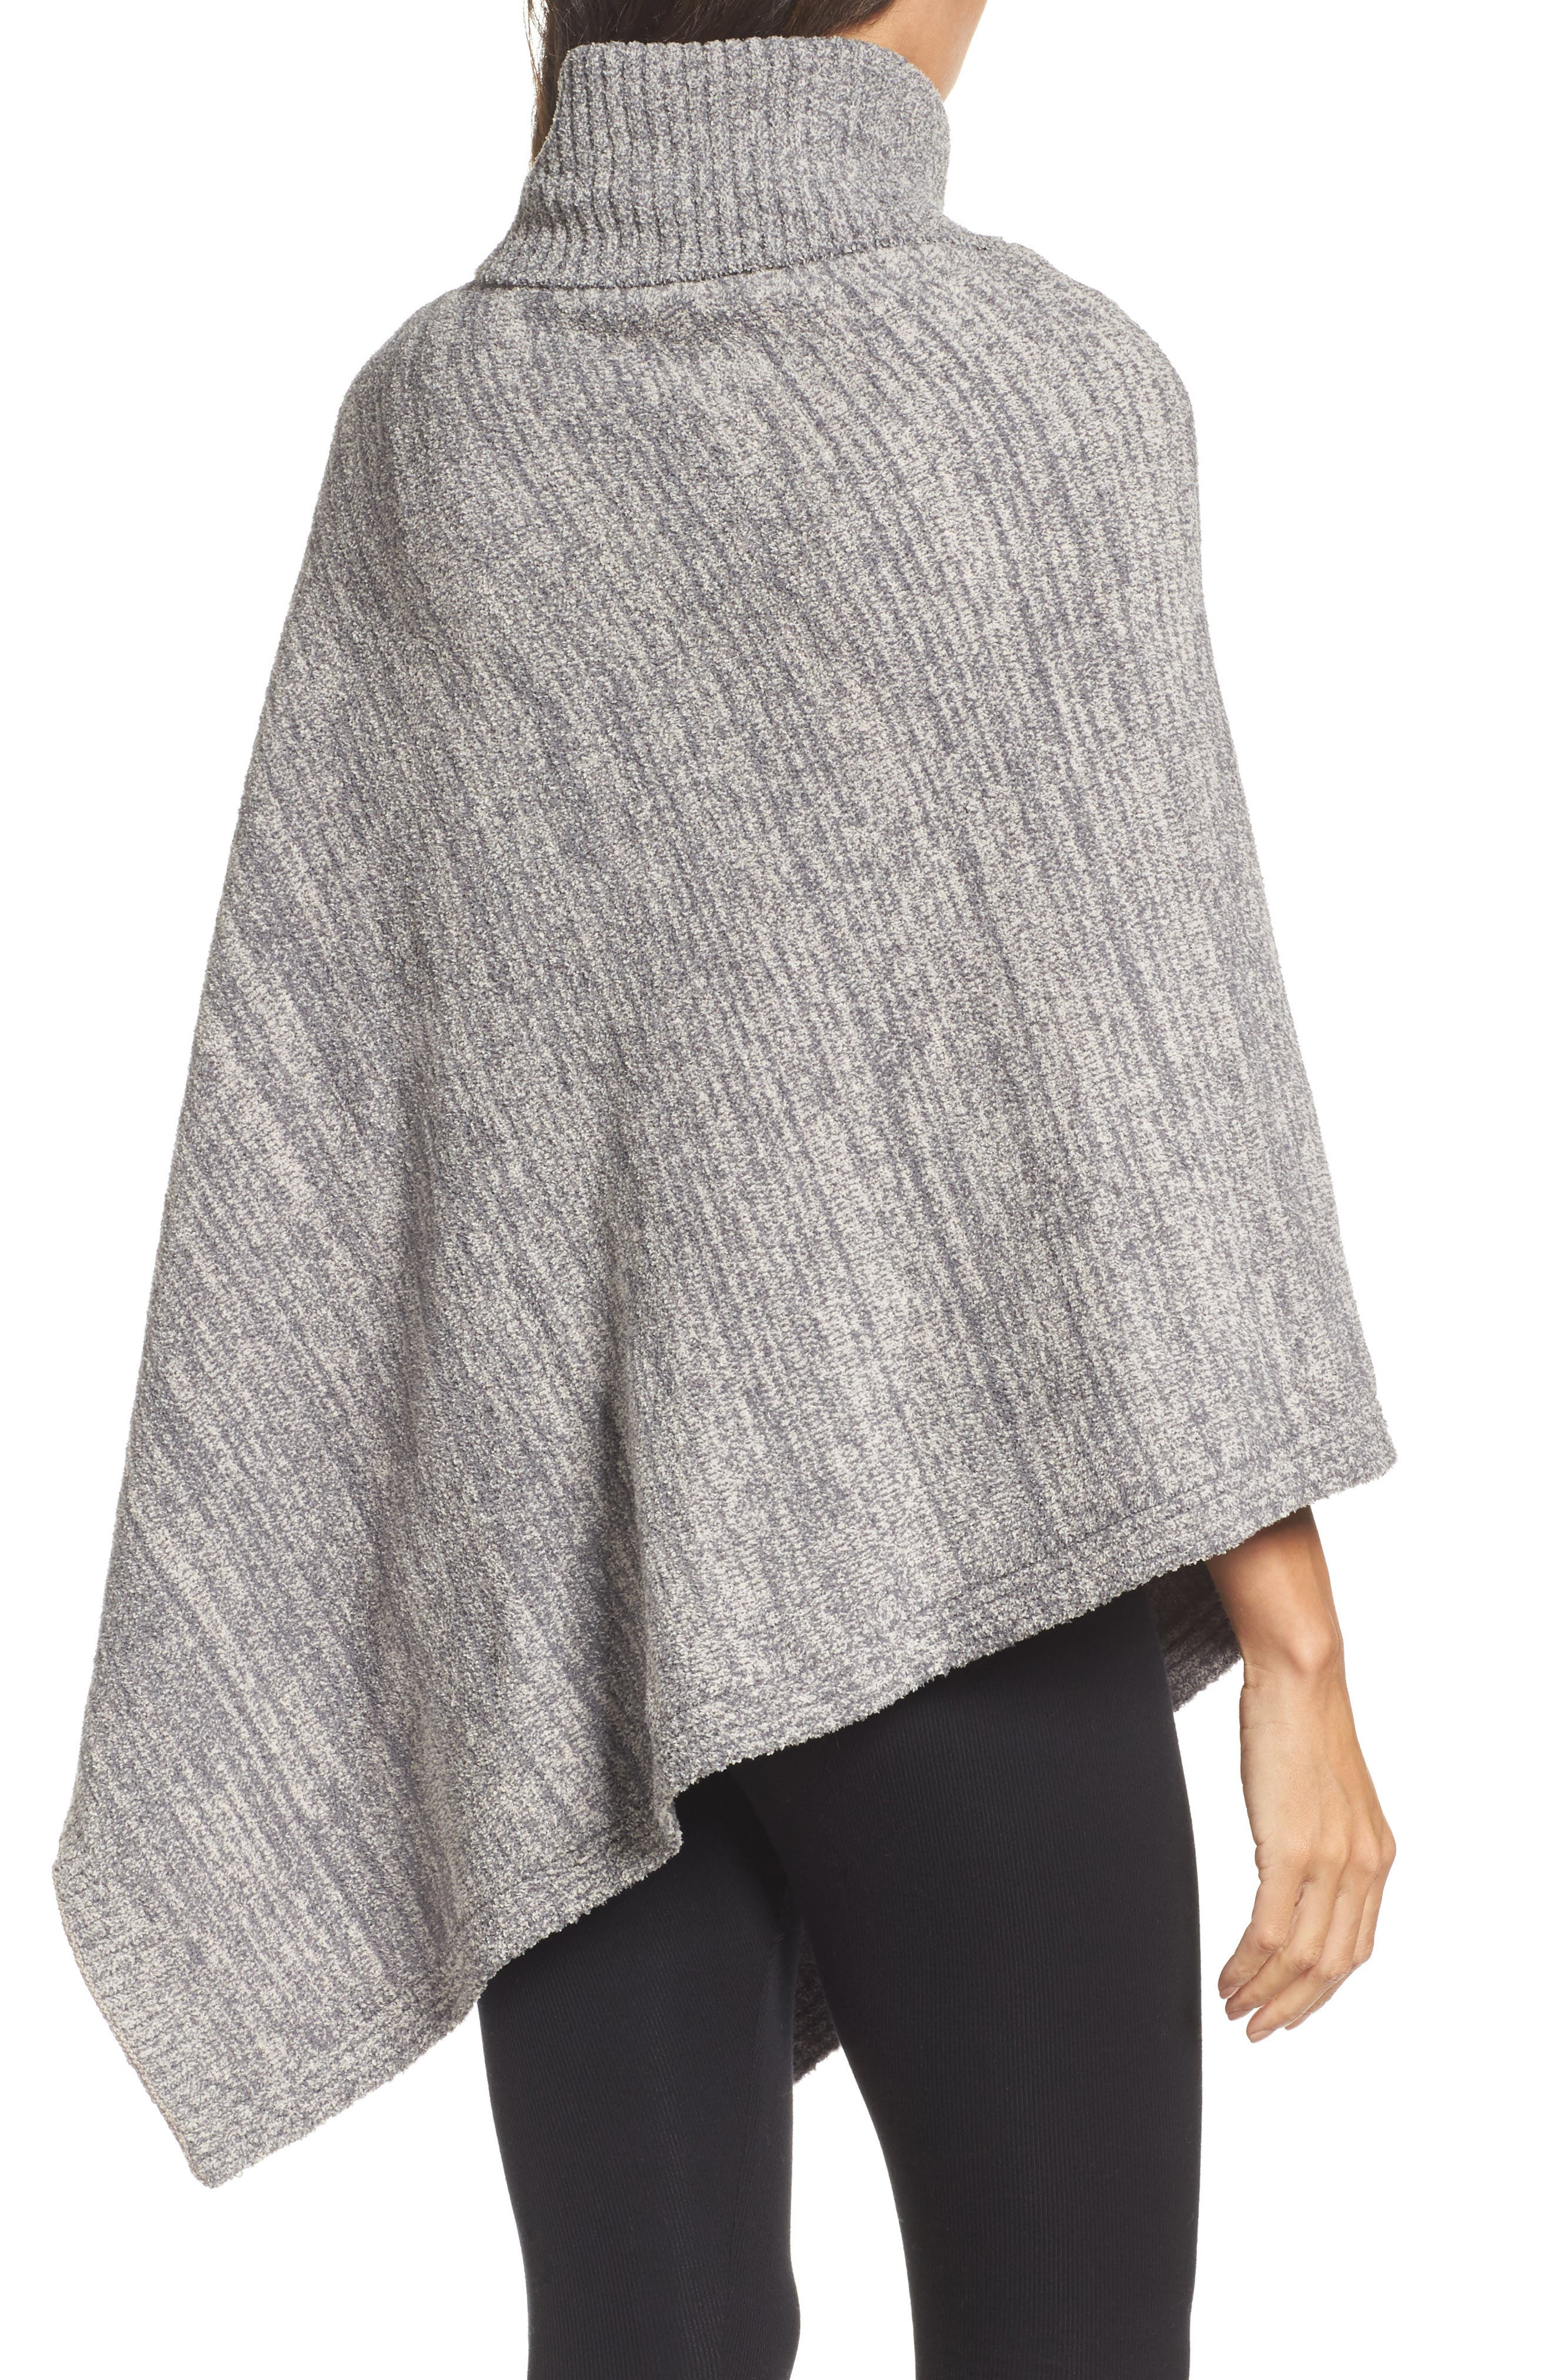 Cozychic<sup>®</sup> Point Dume Poncho,                             Alternate thumbnail 2, color,                             Graphite/ Stone Heathered